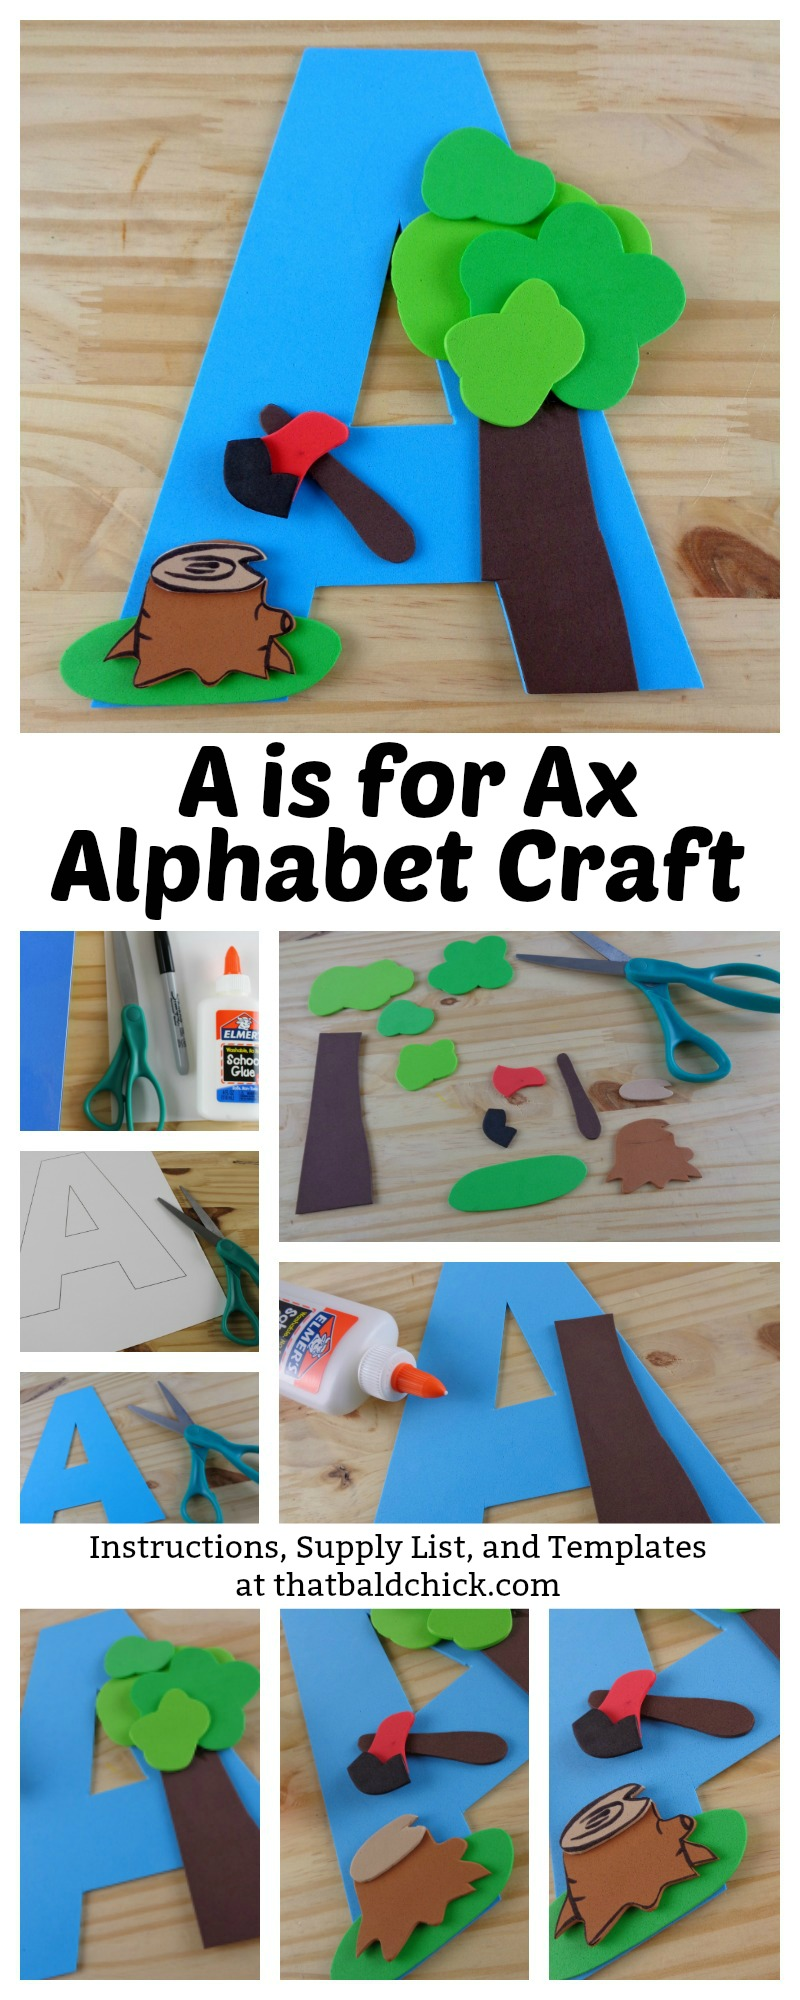 A is for Ax Alphabet Craft - Instructions, Supply List, and Templates at thatbaldchick.com